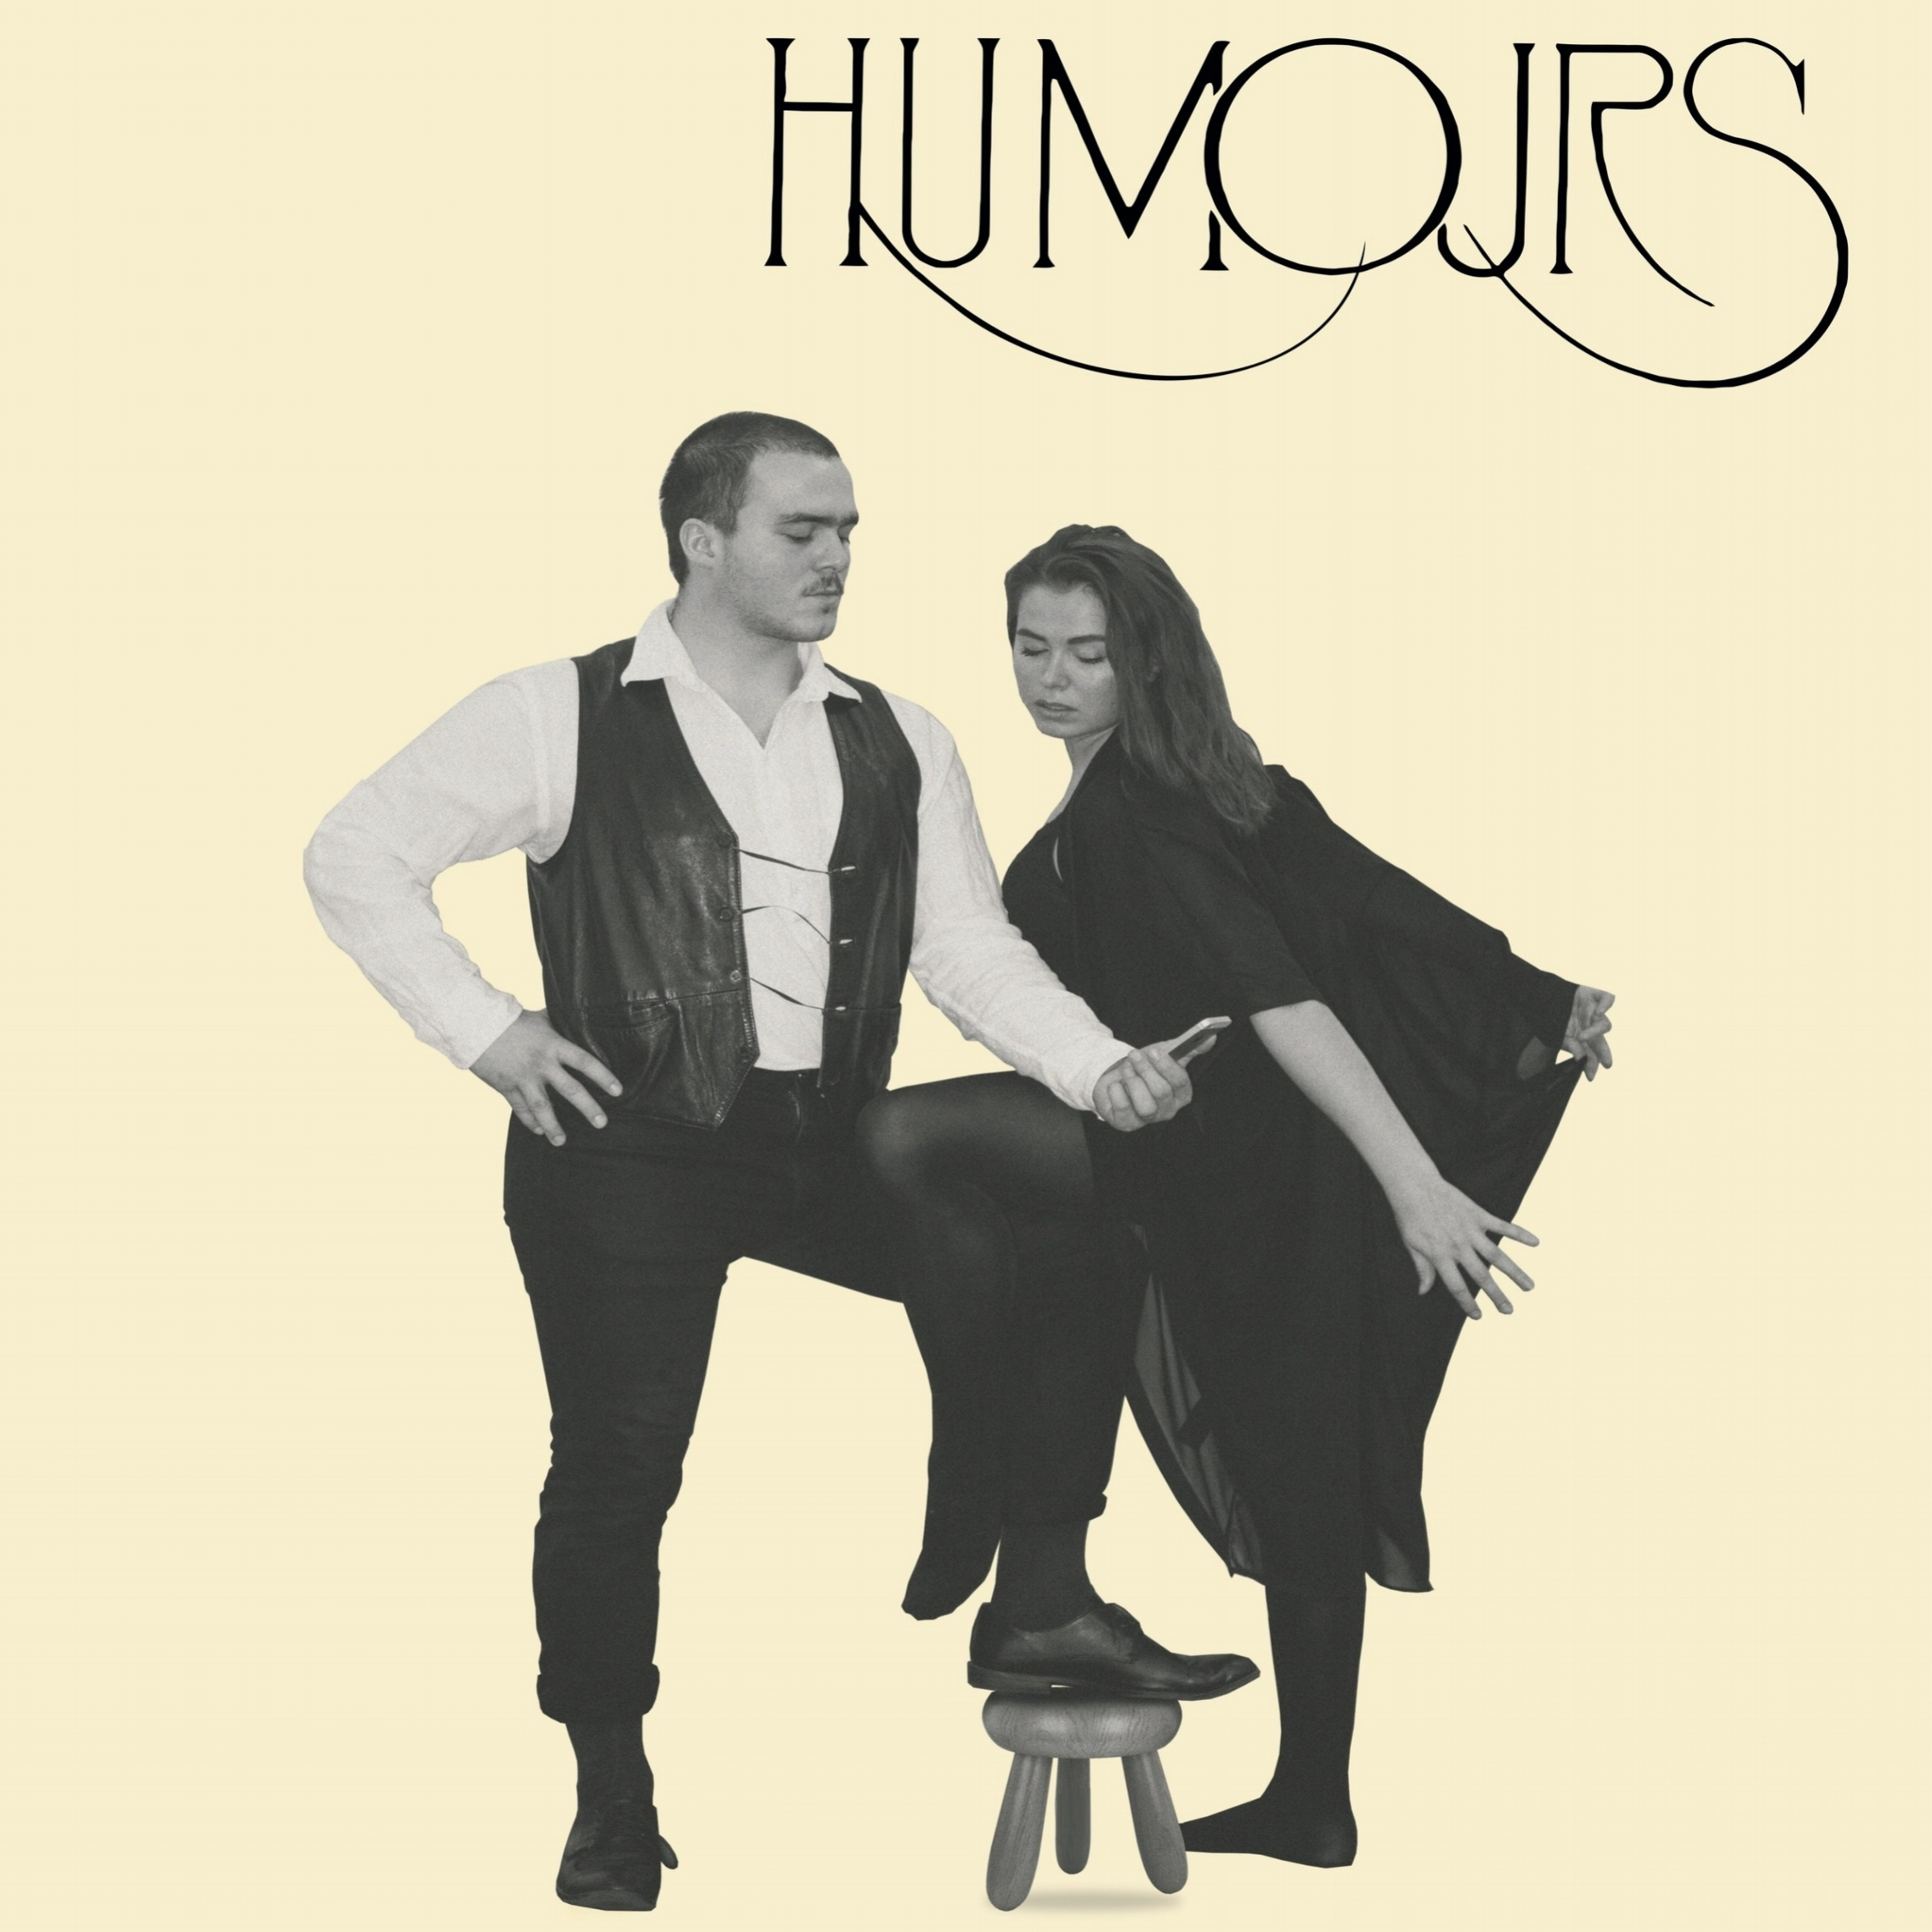 A1_Humours_Poster_v4.jpg